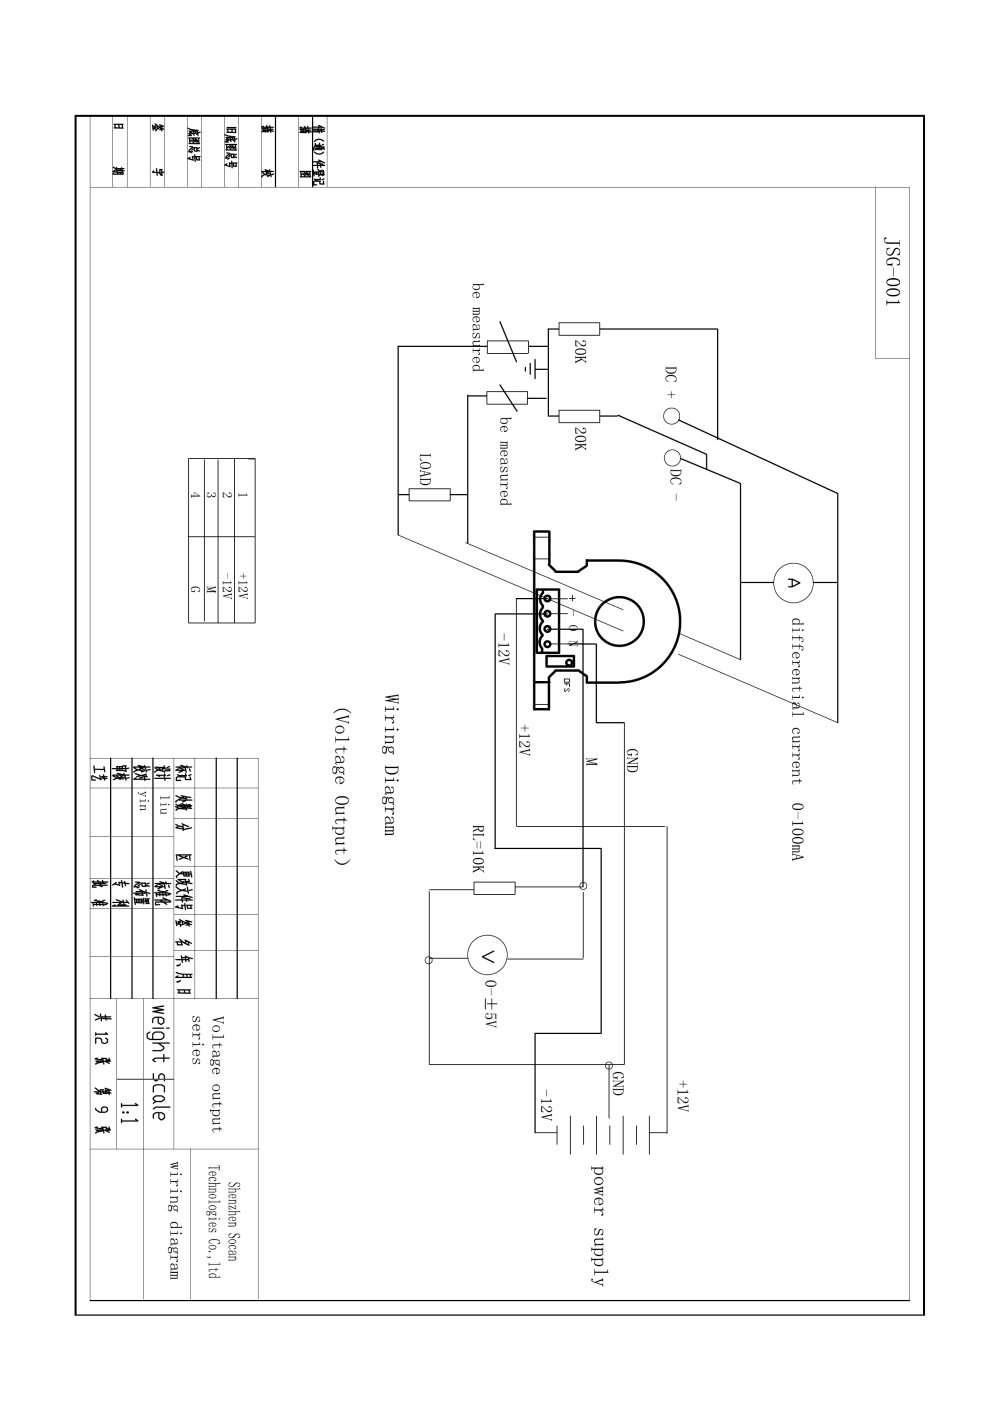 Sullair Generator Wiring Diagram Free Download Diagrams Schematics 100 Compressor Great Rotor Images Electrical And